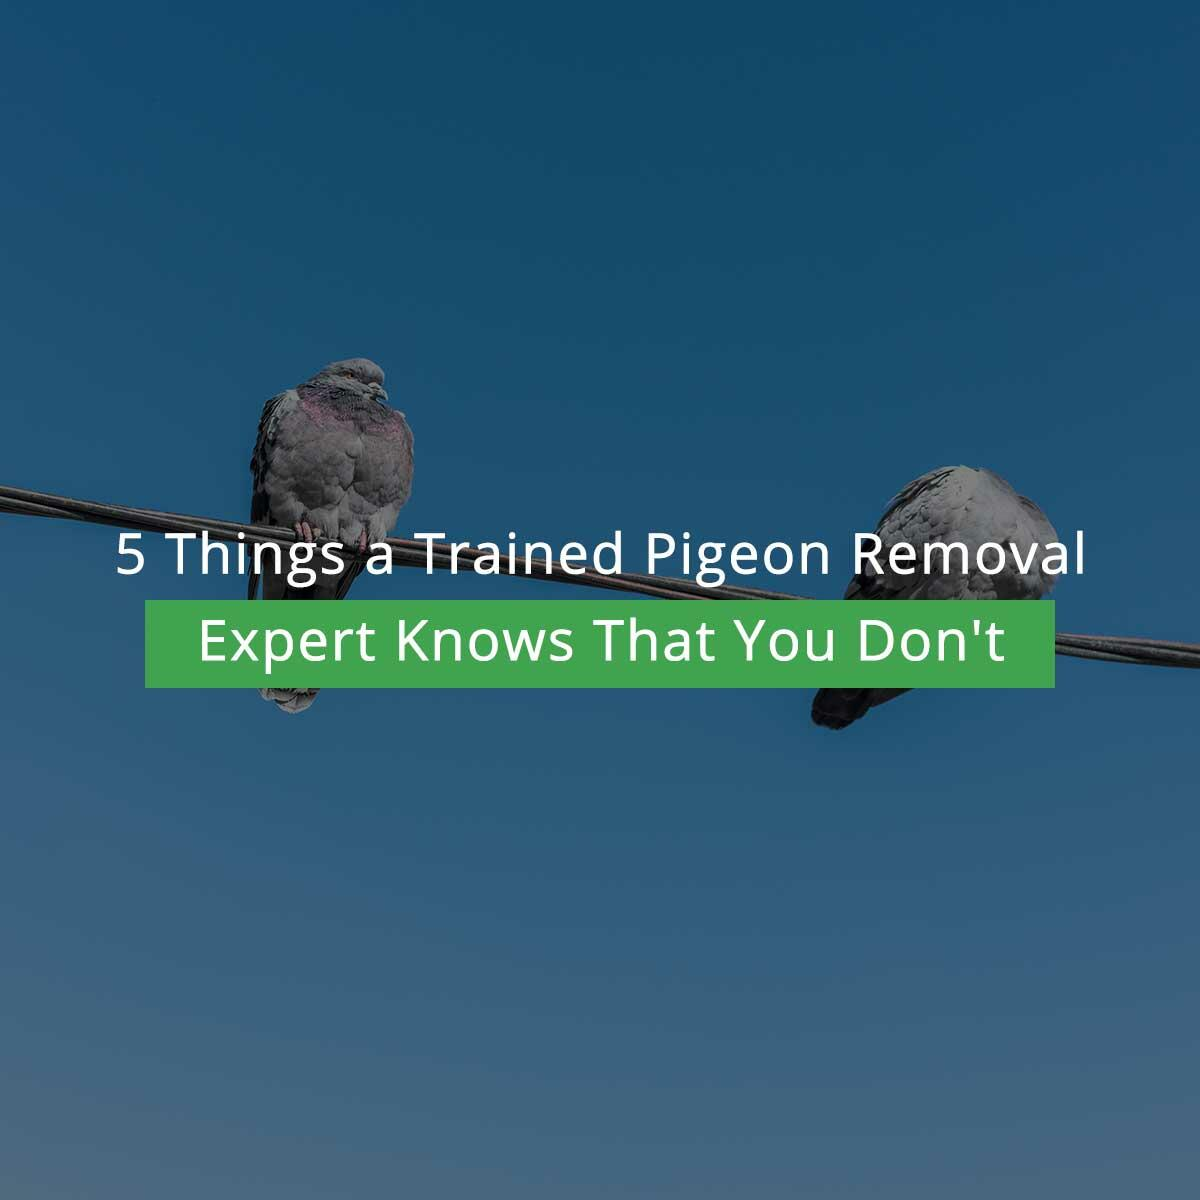 5 Things a Trained Pigeon Removal Expert Knows That You Don't